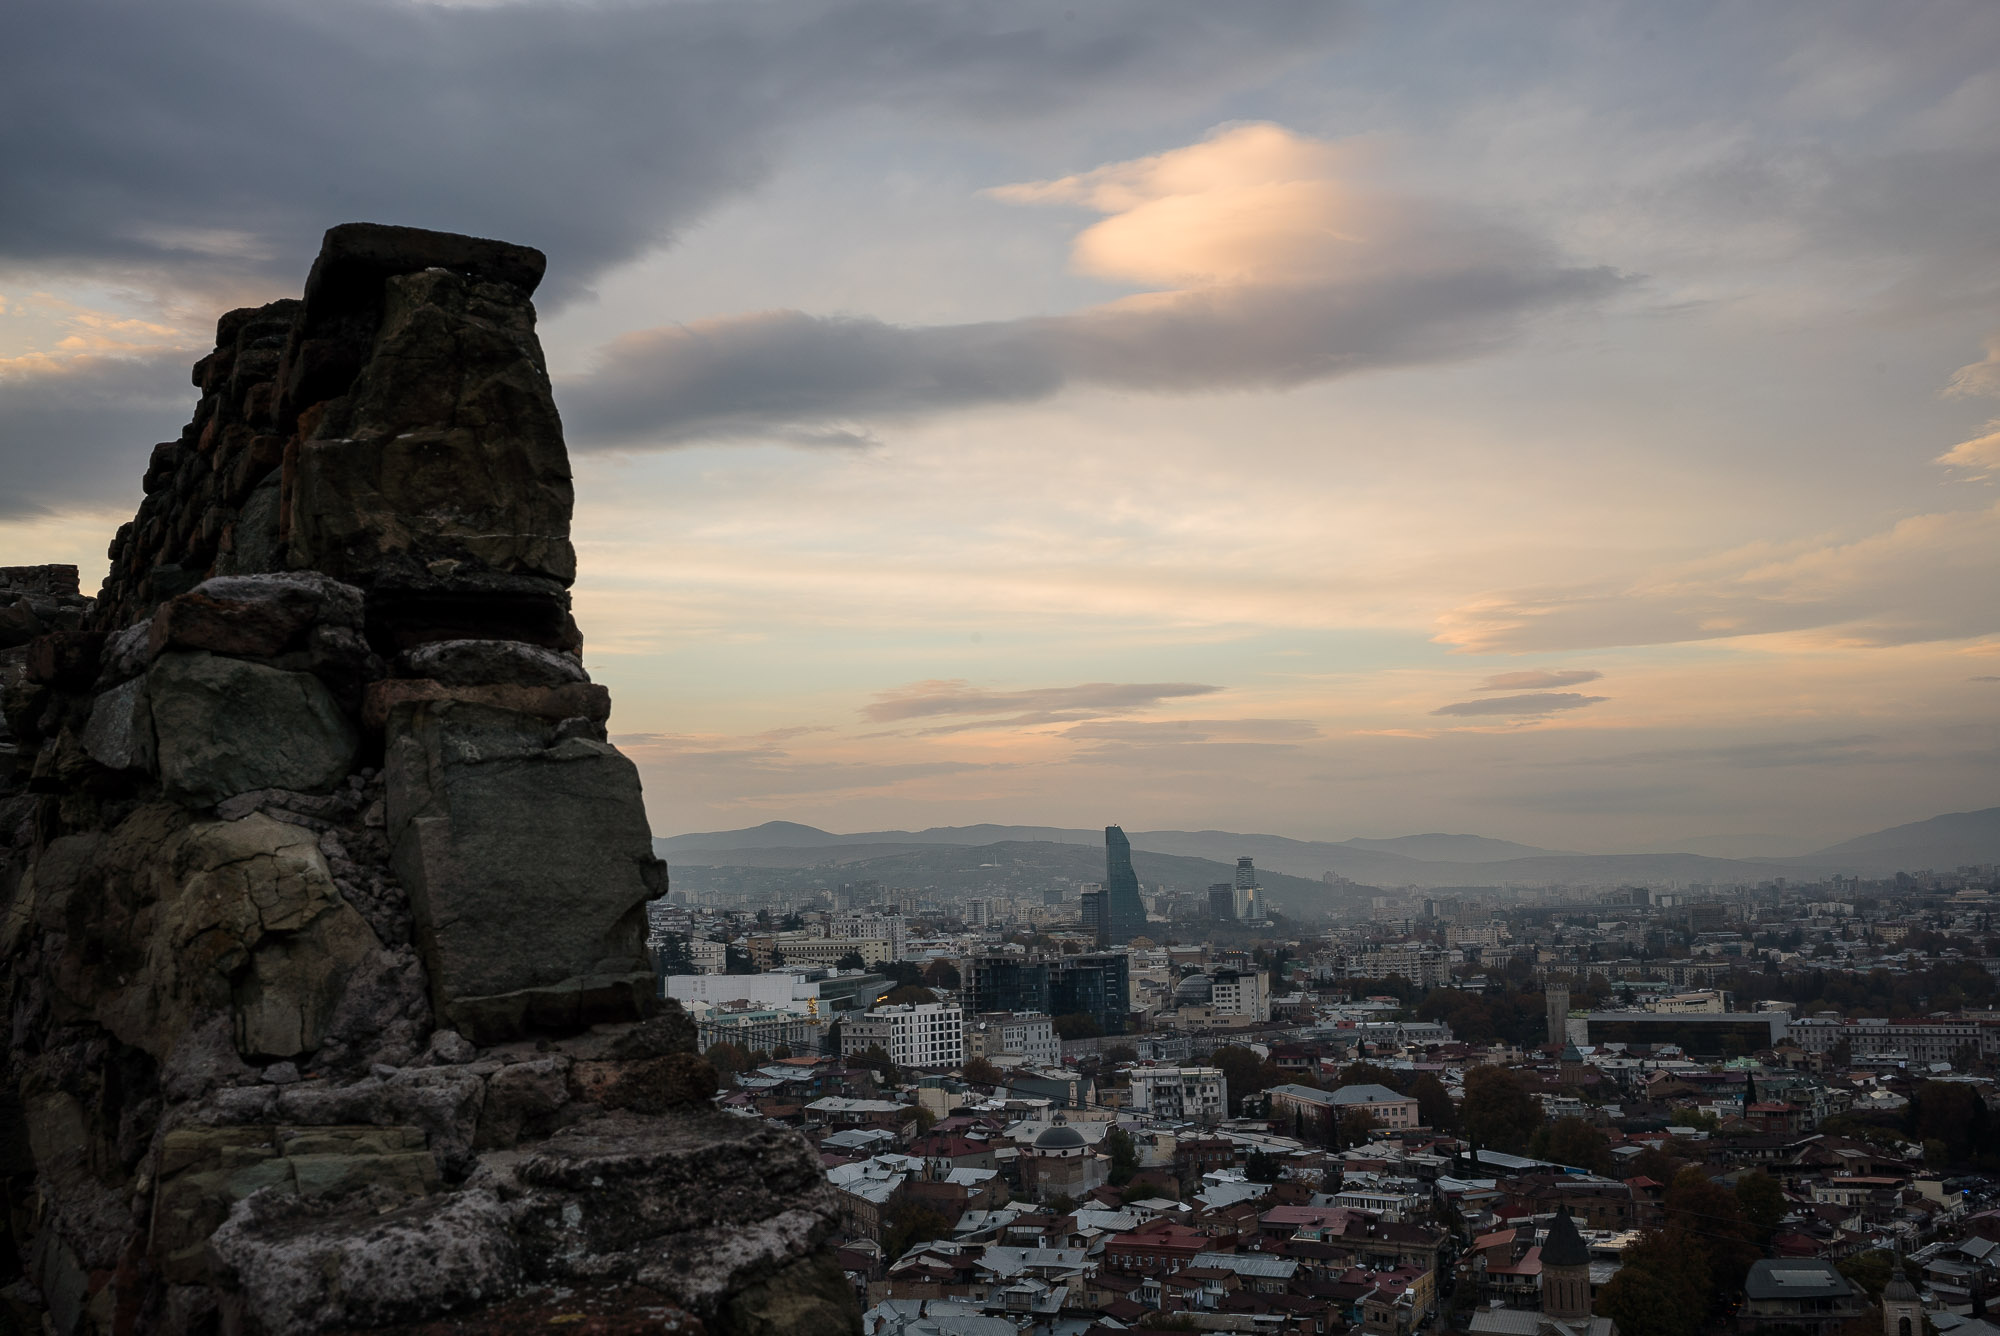 Narikala castle and Tbilisi